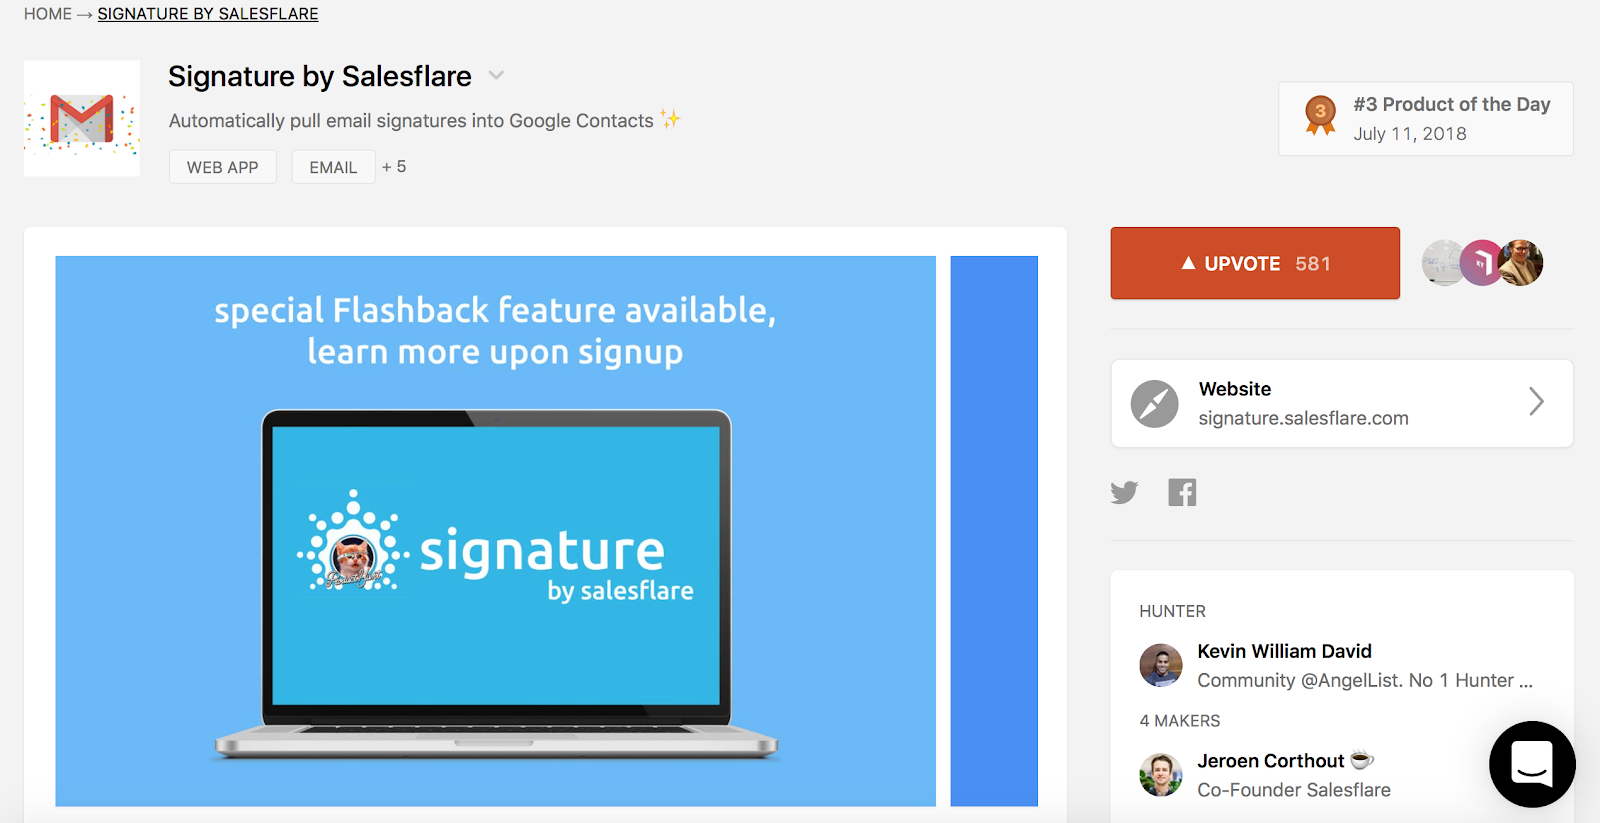 EXAMPLE #1: SIGNATURE BY SALESFLARE